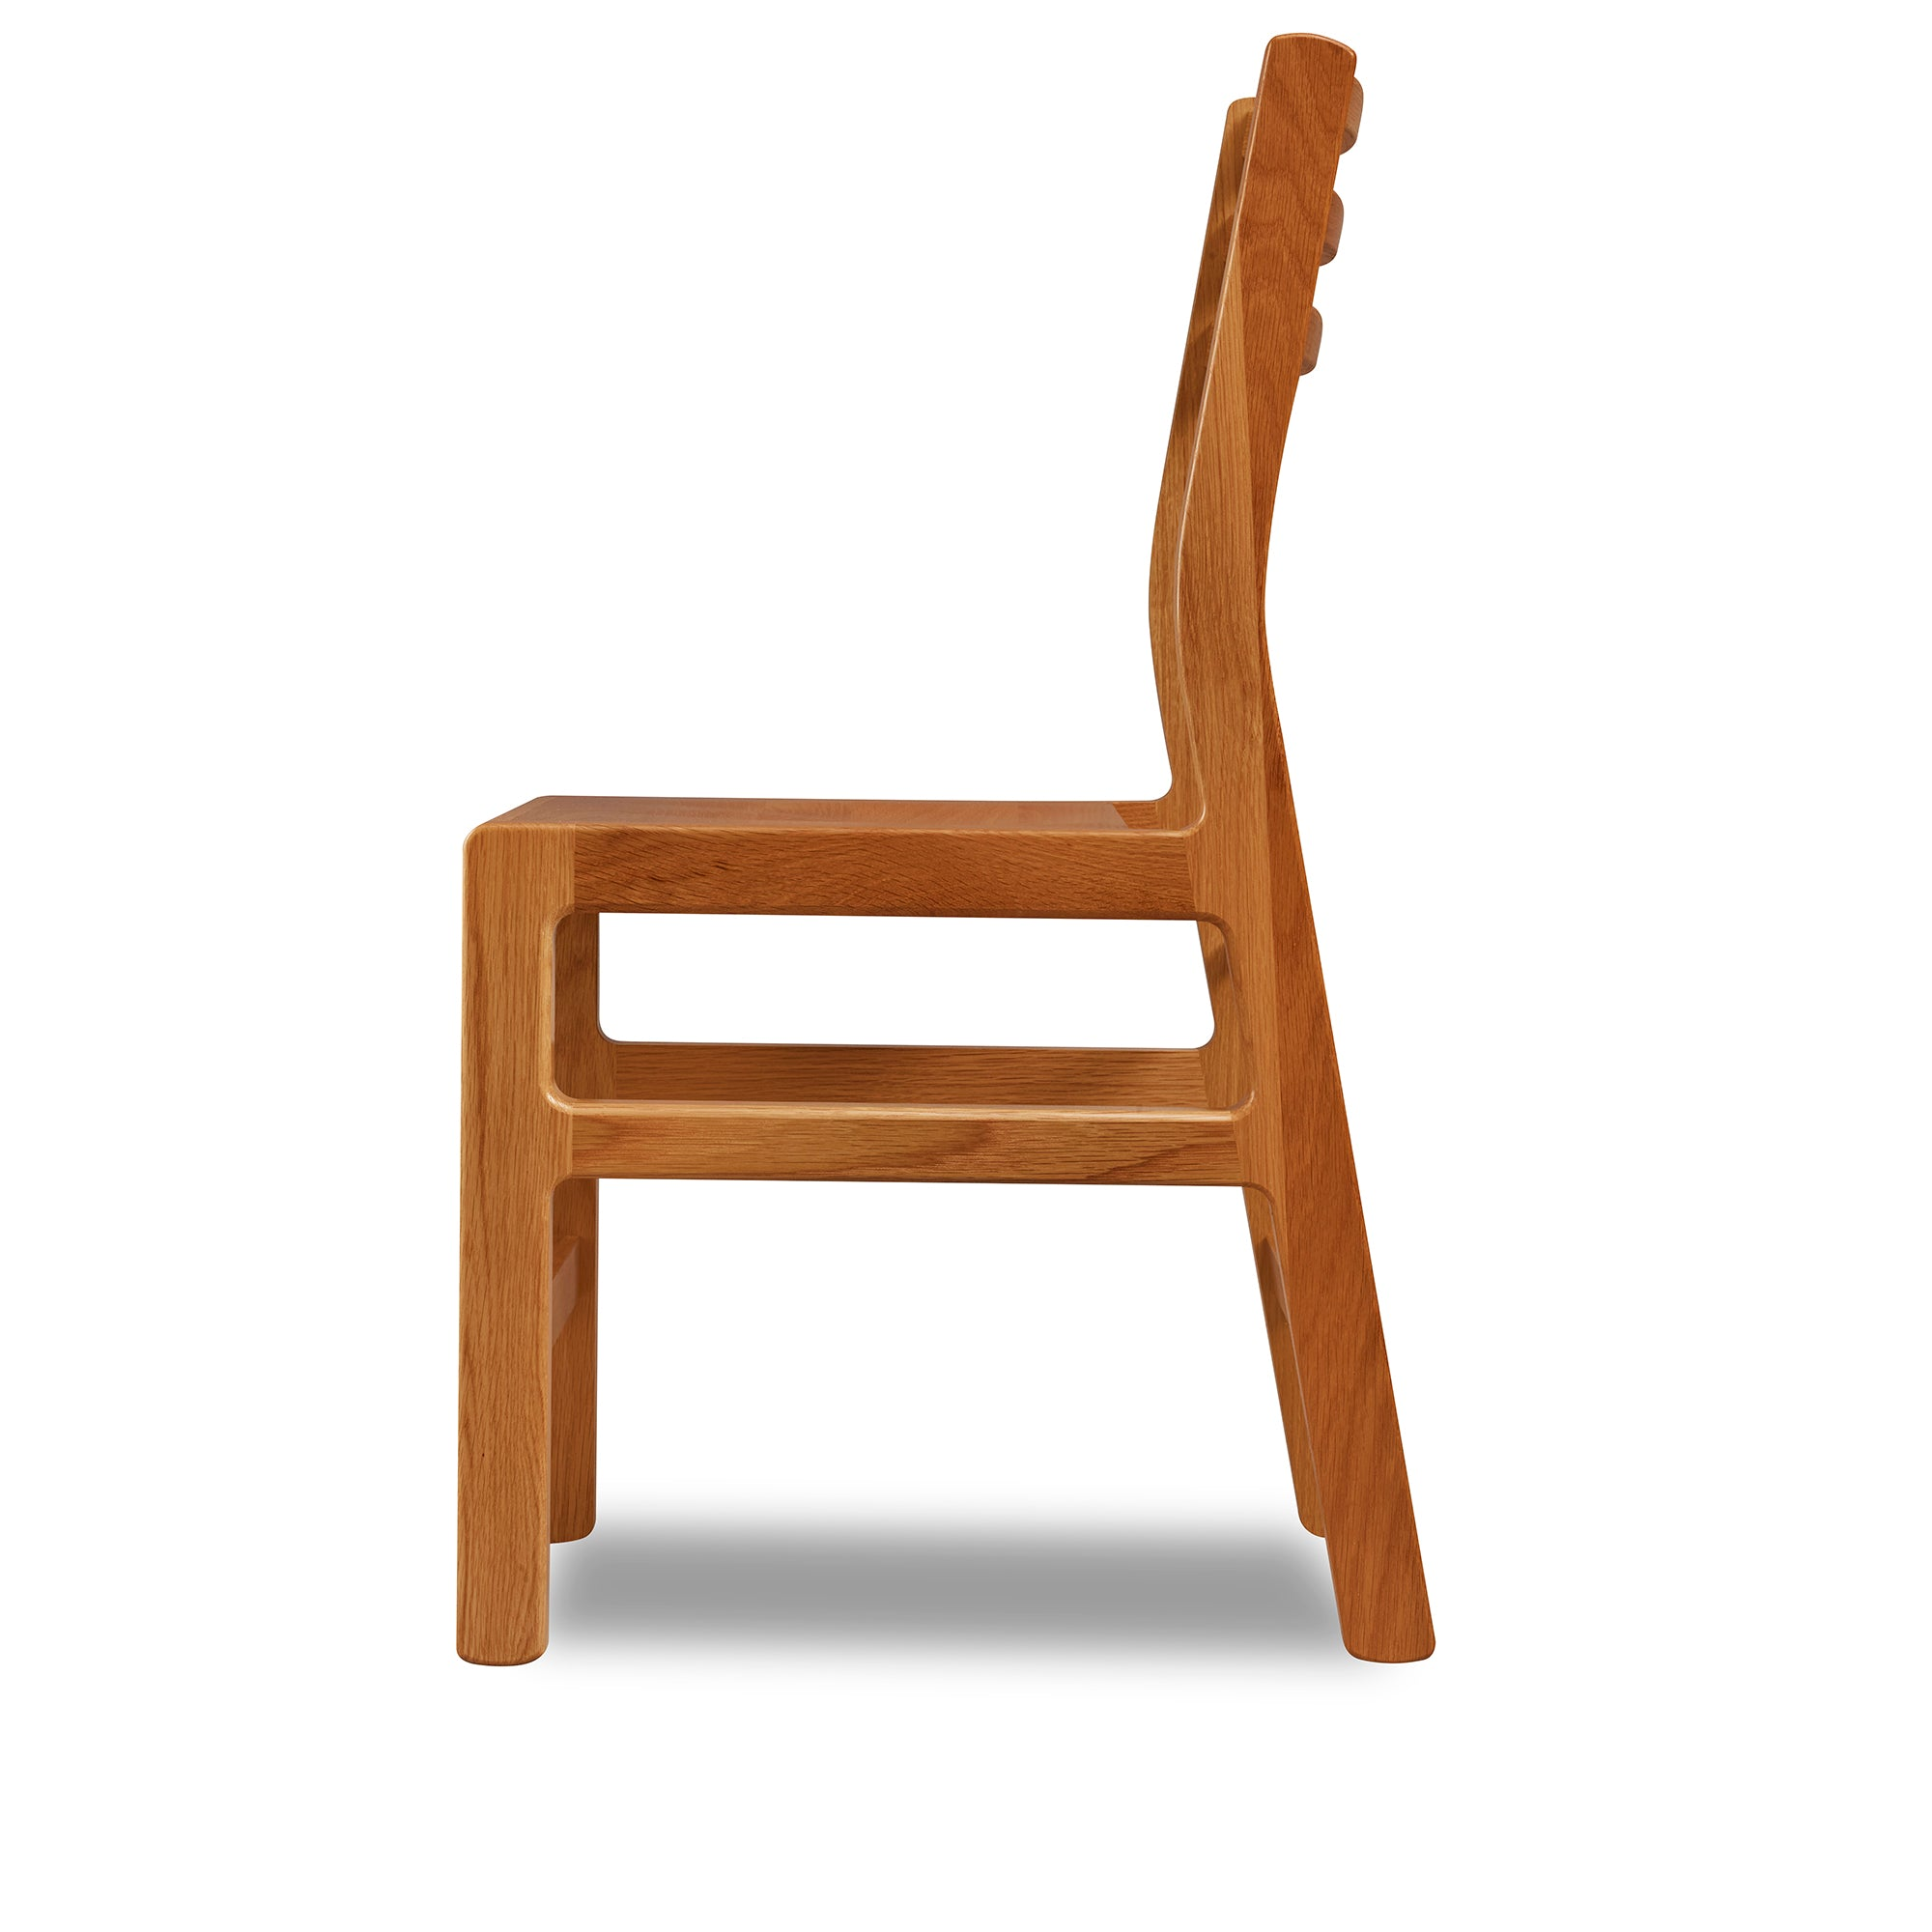 Solid white oak wood chair with ladderback top